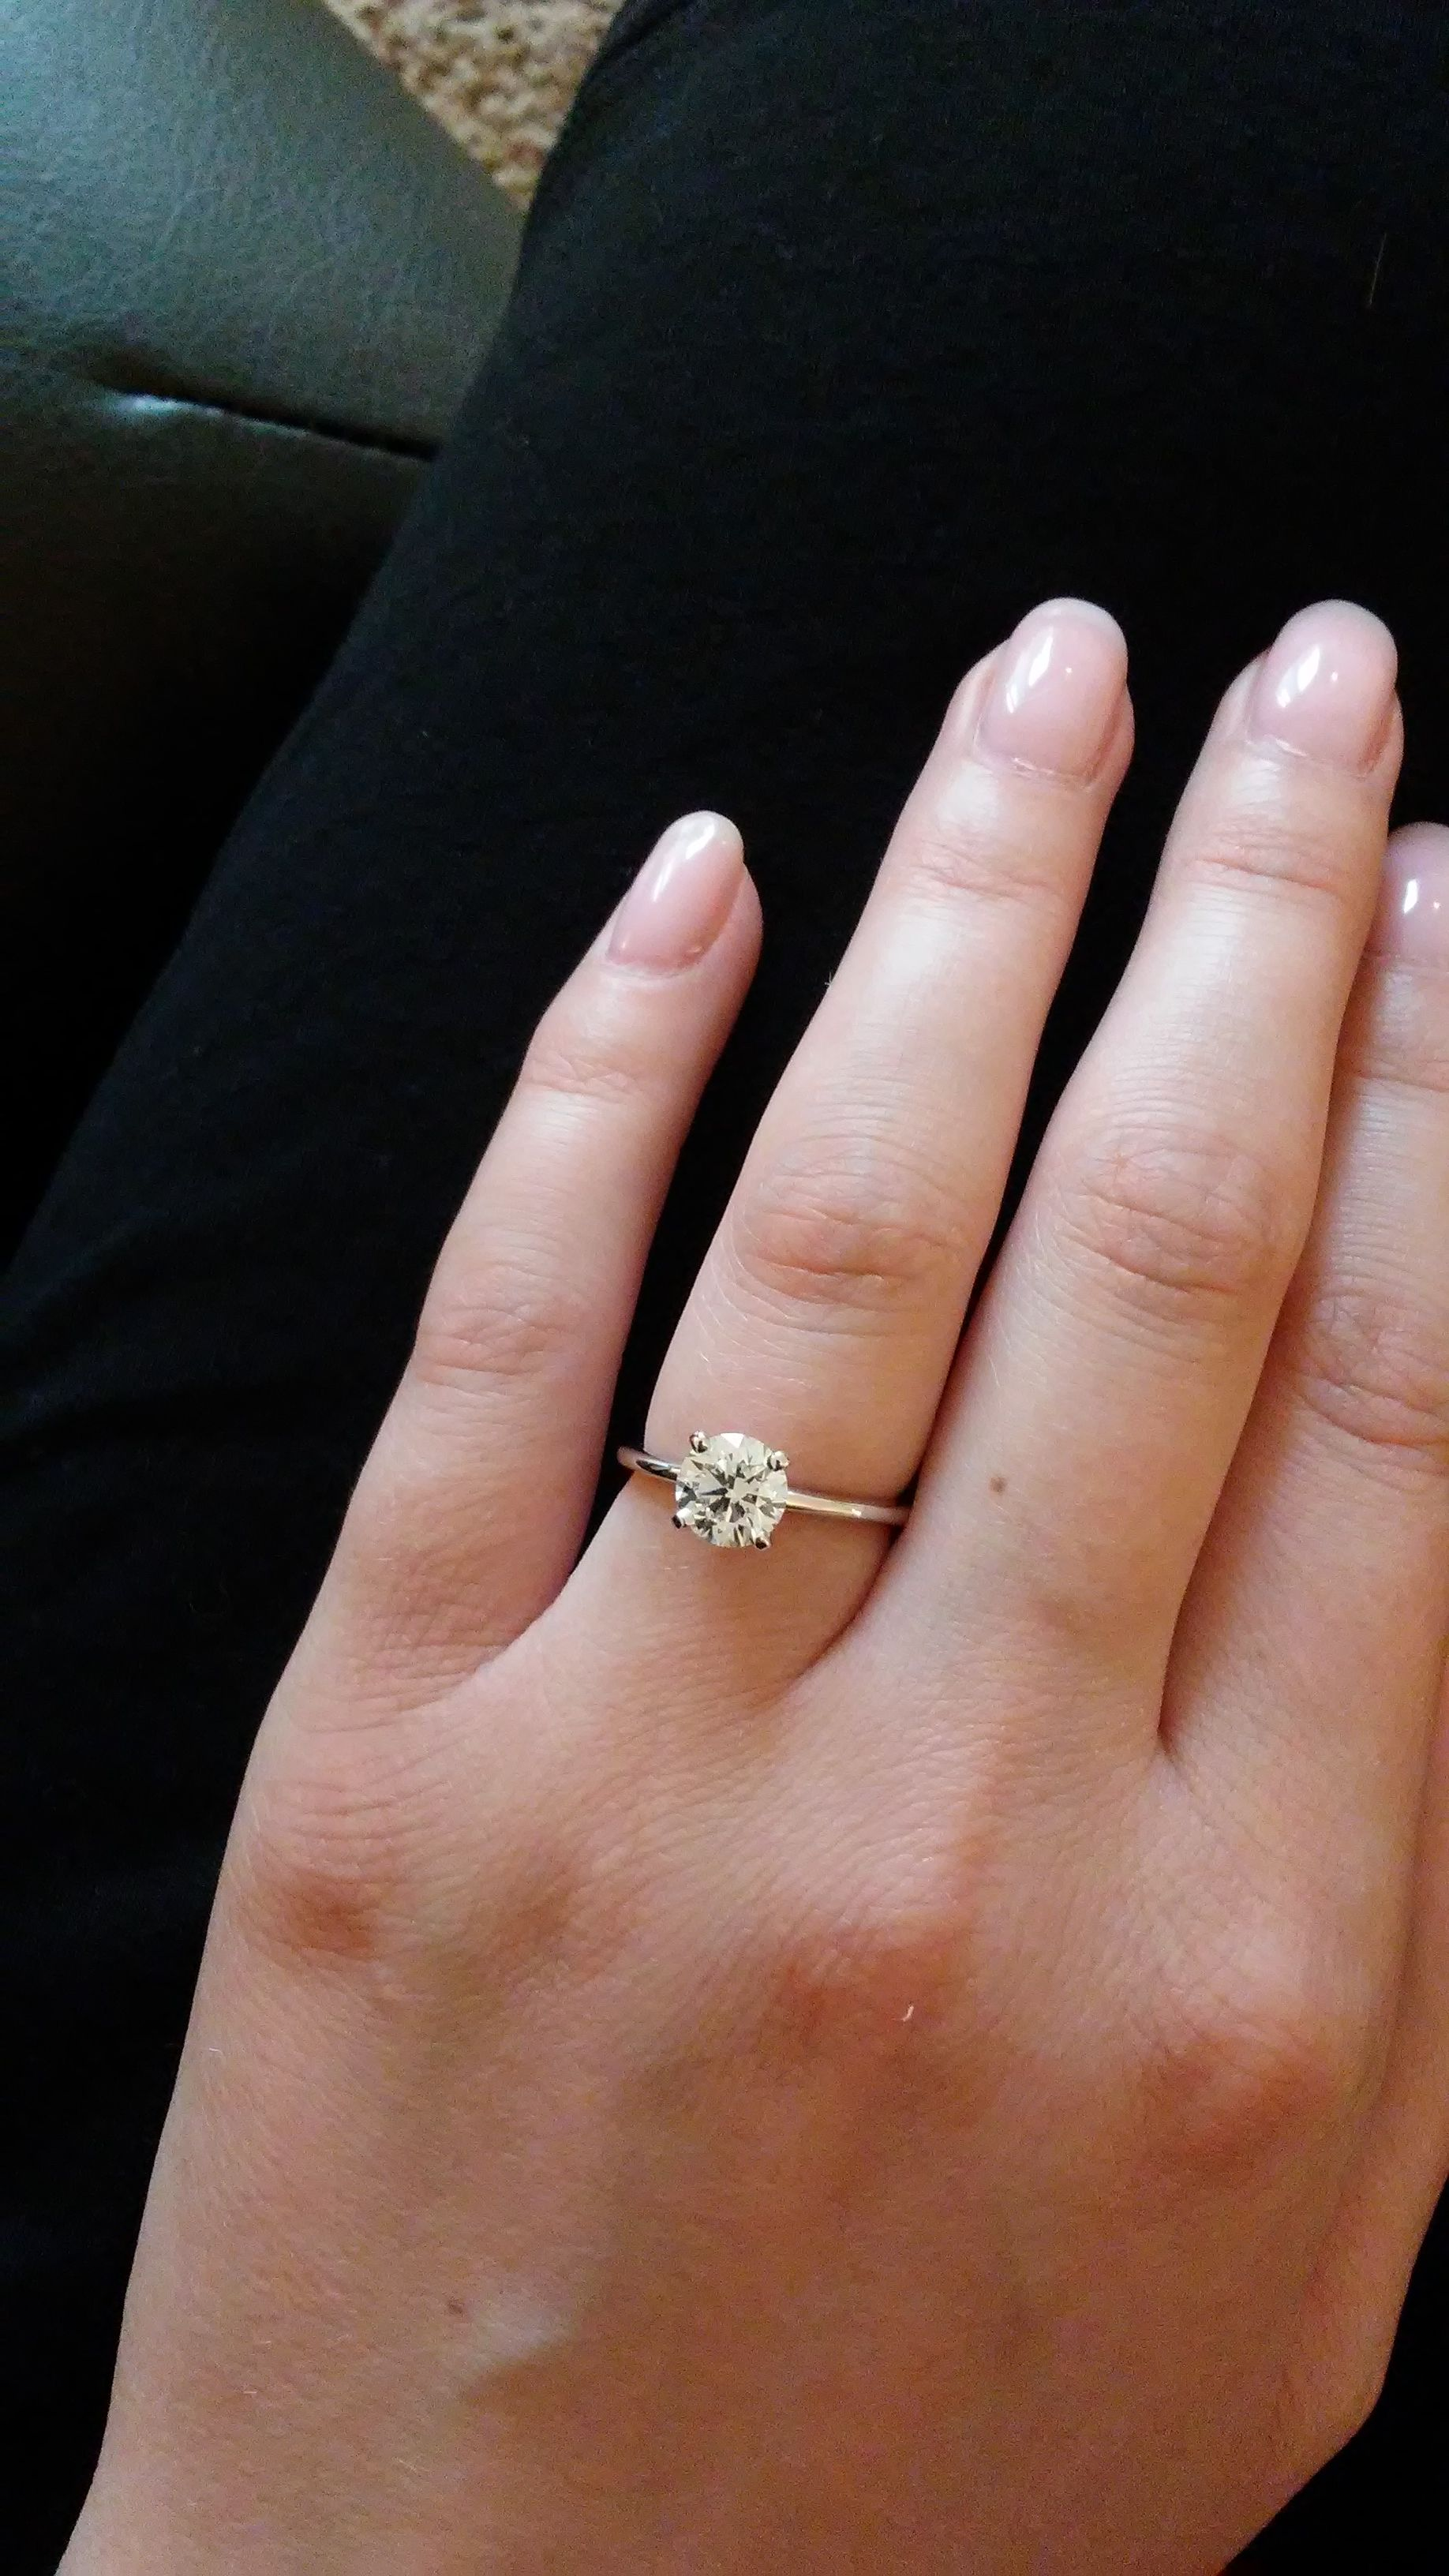 1 Carat Solitaire On Size 5 Finger Page 2 Page 2 In 2020 Round Solitaire Engagement Ring Yellow Engagement Rings 1 Carat Engagement Rings